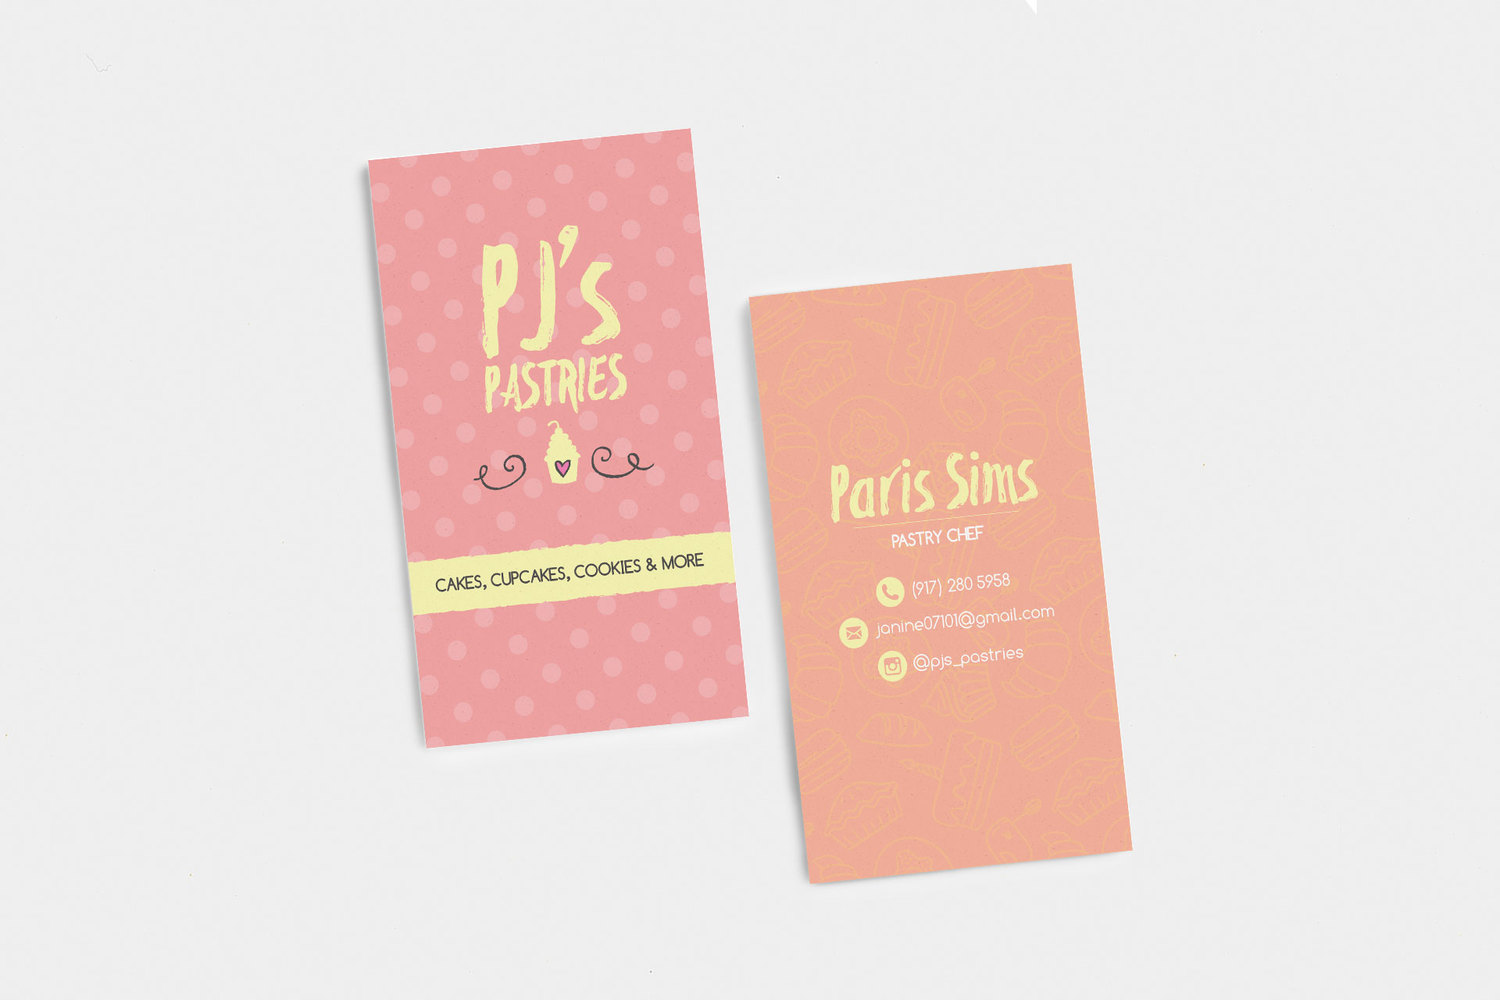 Pastry chef business cards noizey graphics contact us for your next project homeservicescontact us noizey graphics pastry chef business cards colourmoves